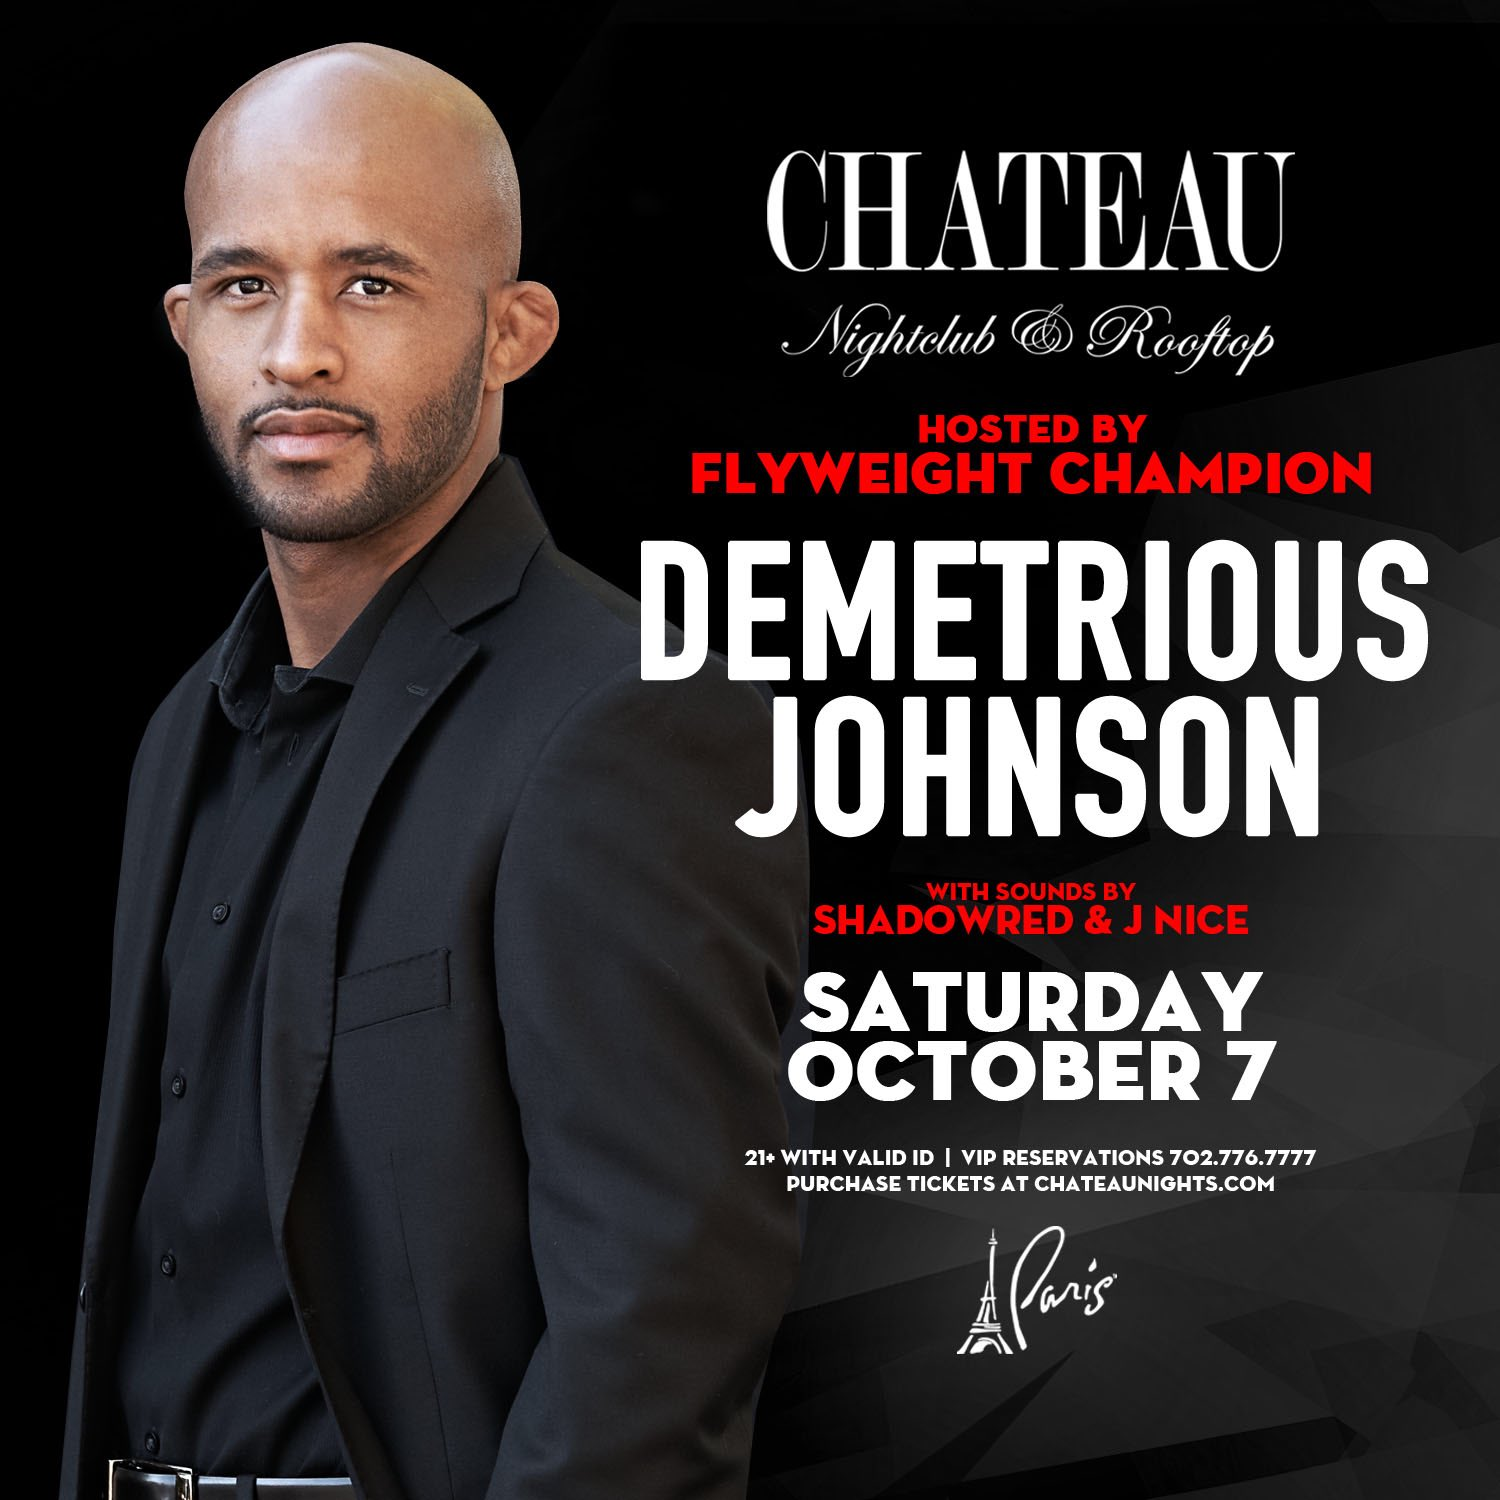 Official after party for the Mighty one! Come hang out after @Ufc 216 concludes @chateaulv #ufc216 #andstill https://t.co/JO8JKCLJrm